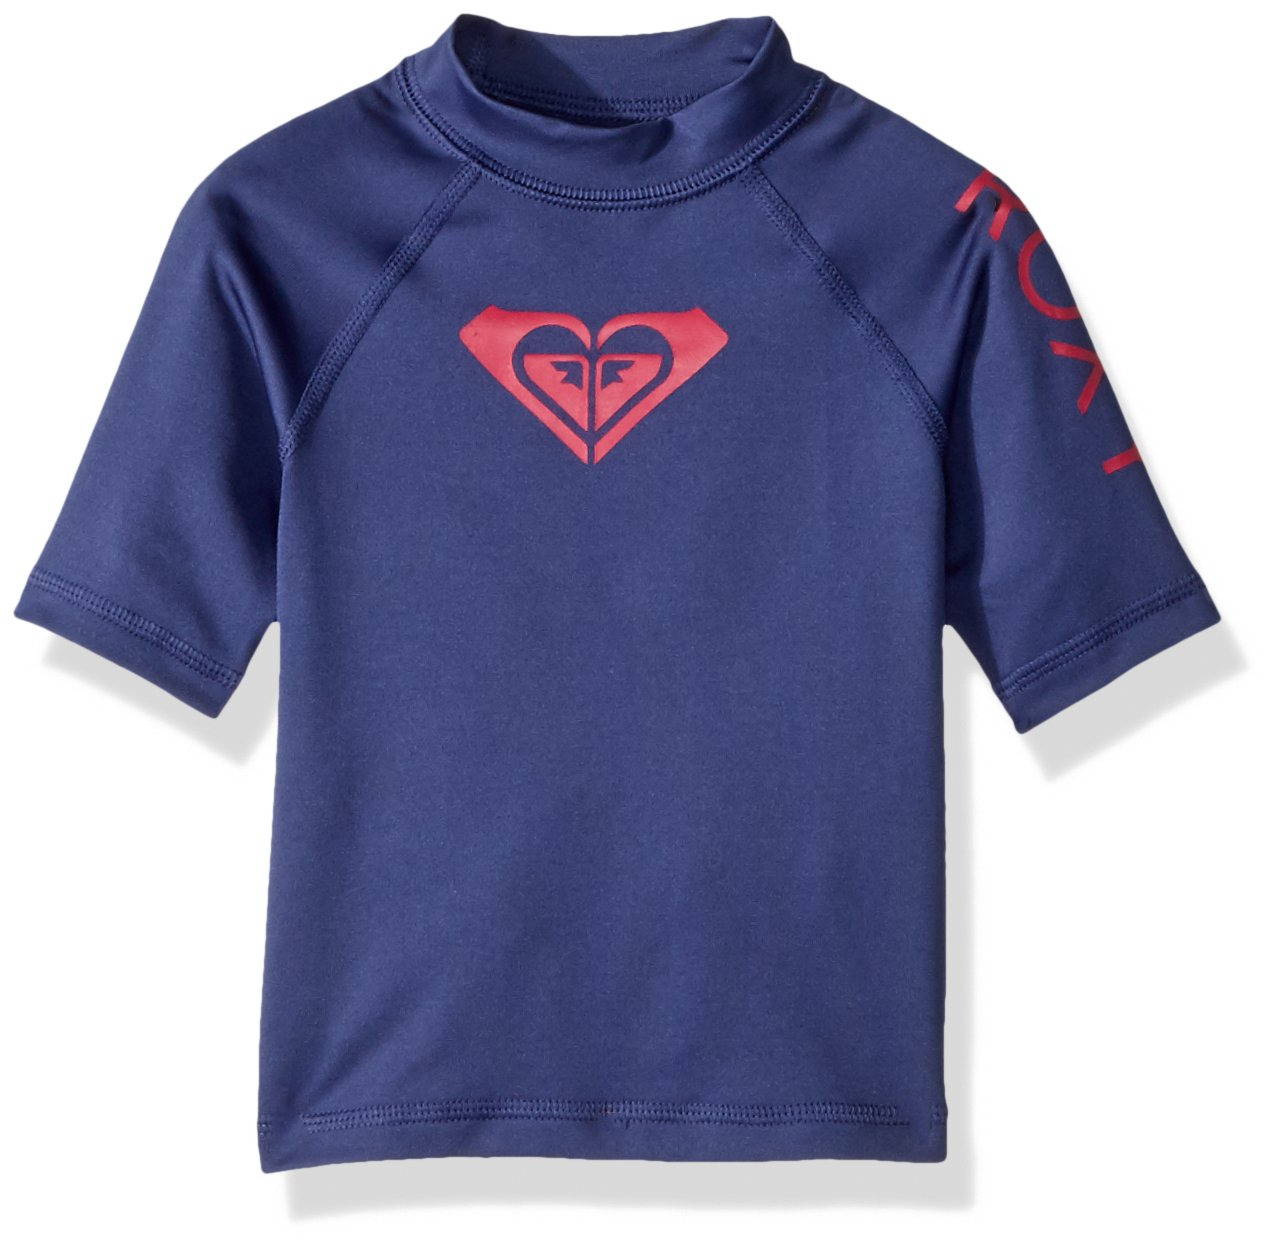 Roxy Little Girls' Whole Hearted Short Sleeve Rashguard, deep Cobalt, 4 by Roxy